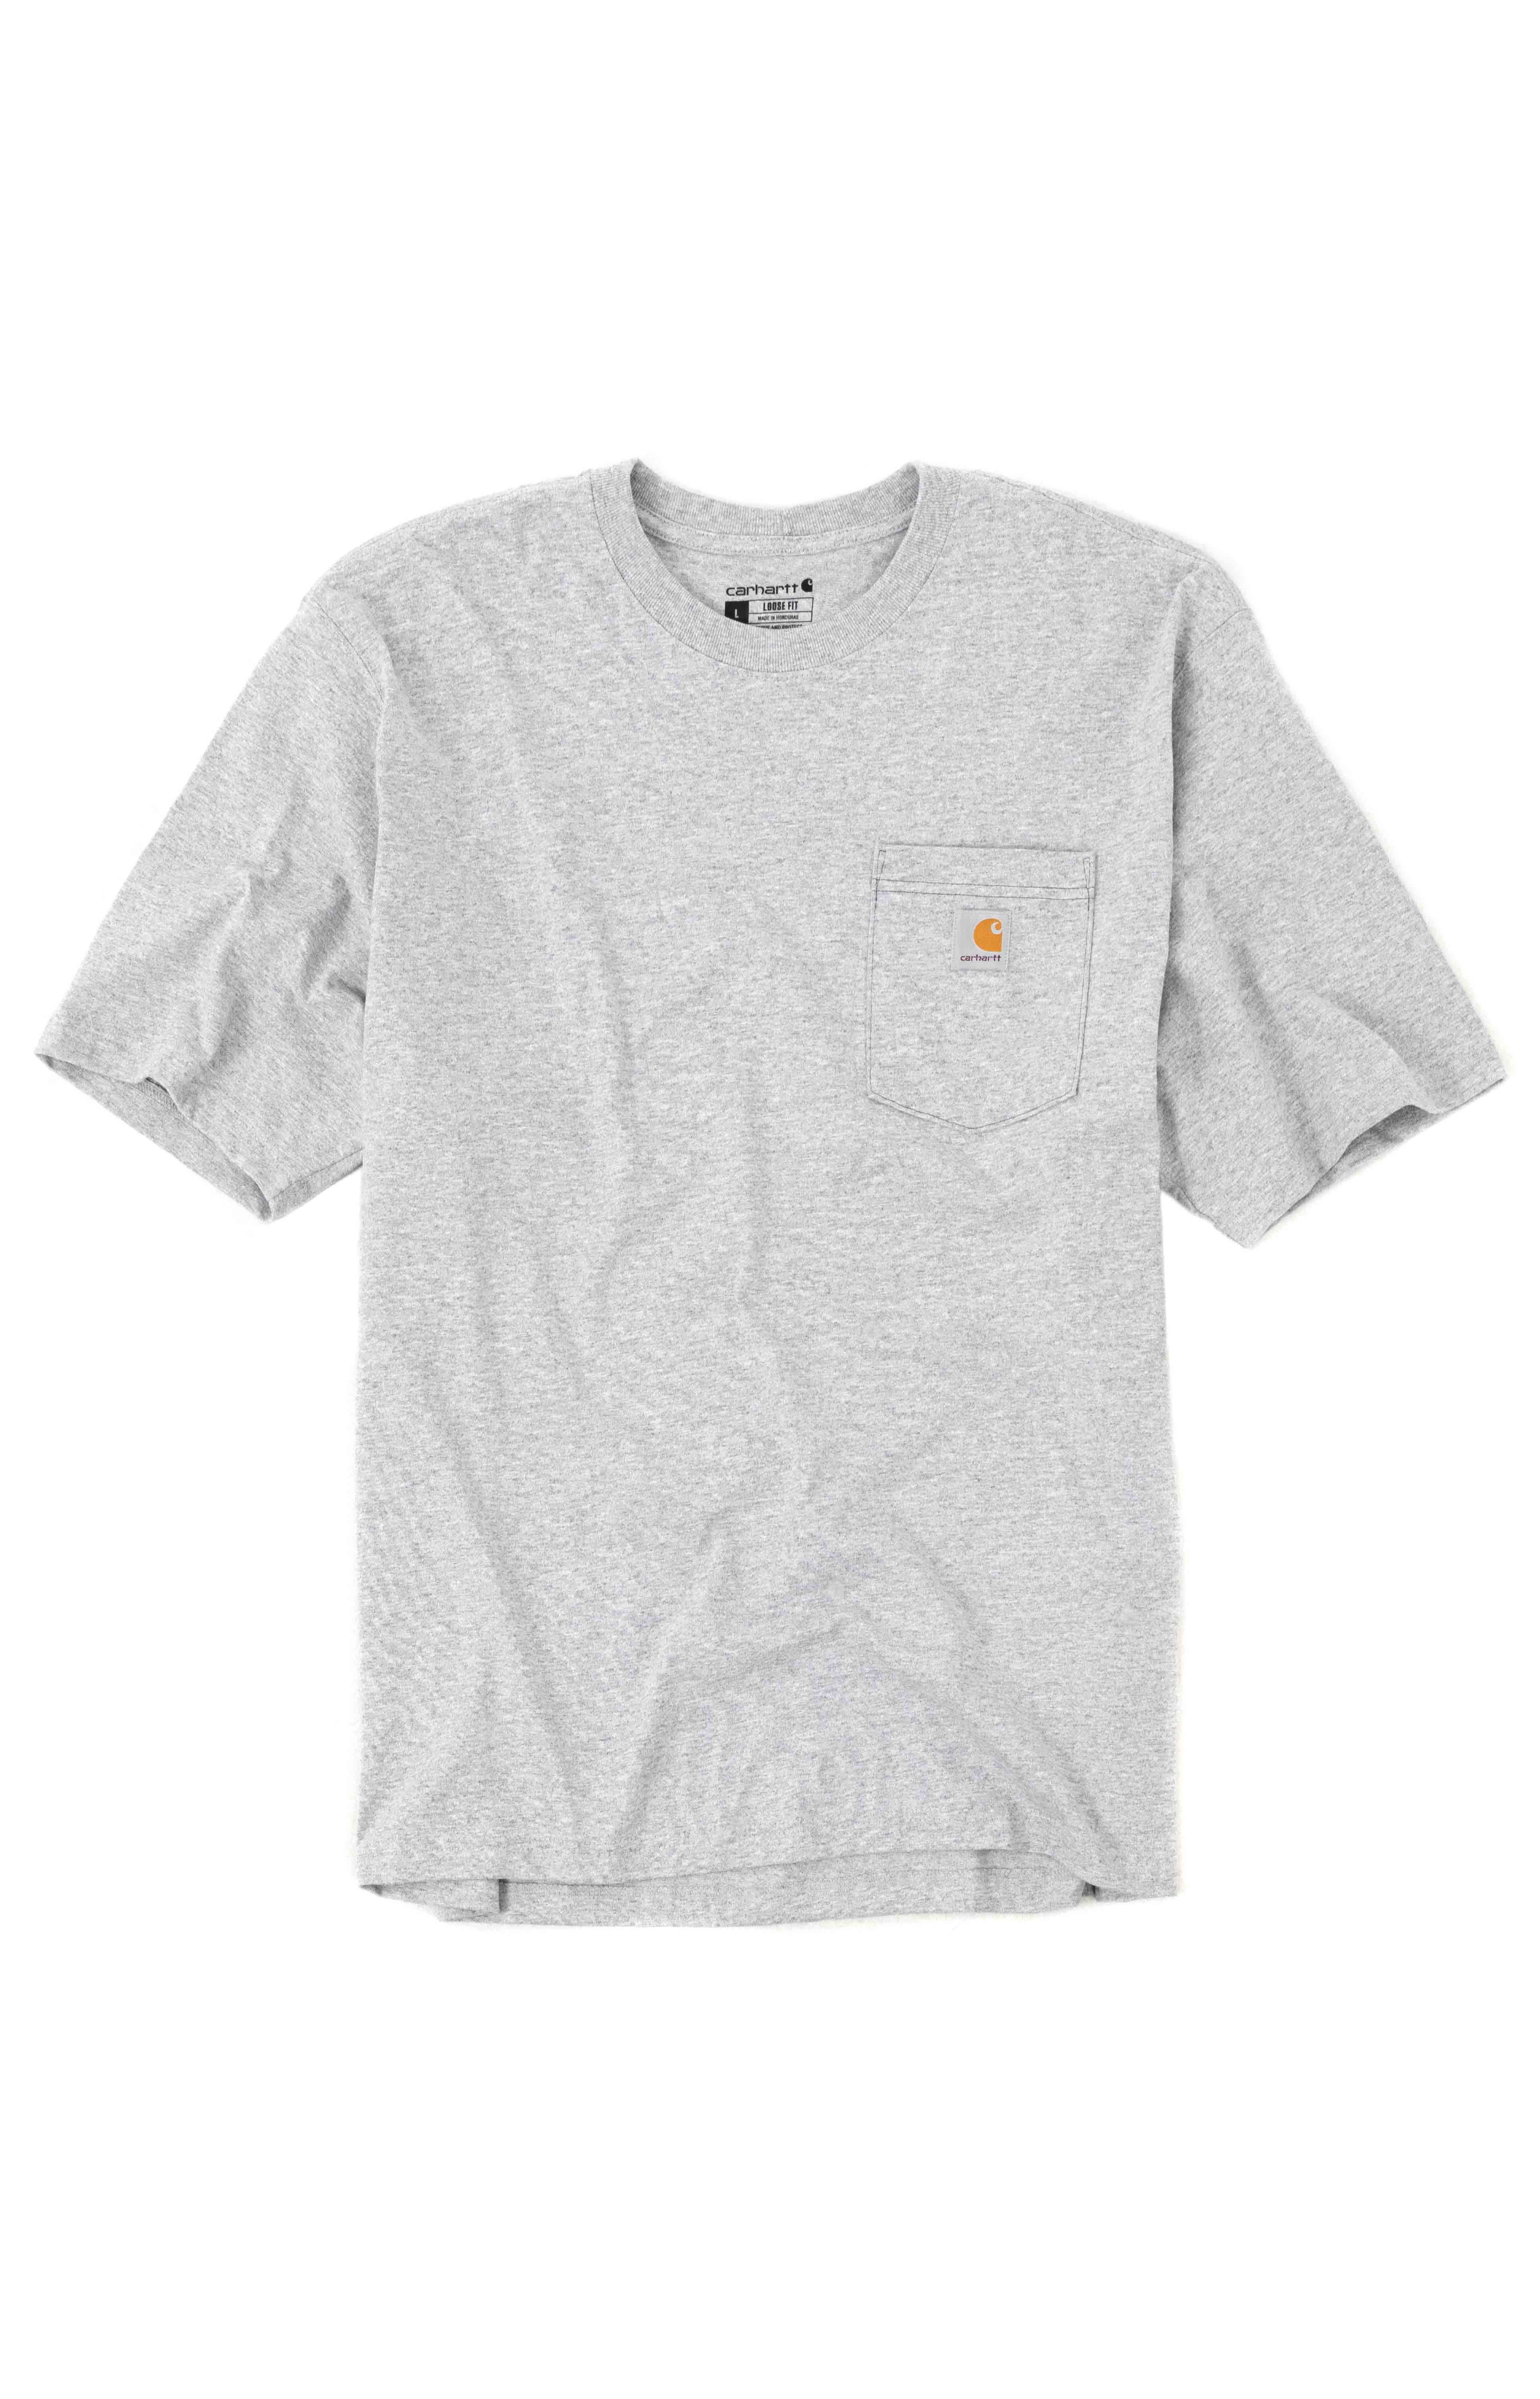 (104608) Loose Fit HW S/S Pocket Railroad Graphic T-Shirt - Heather Grey 2